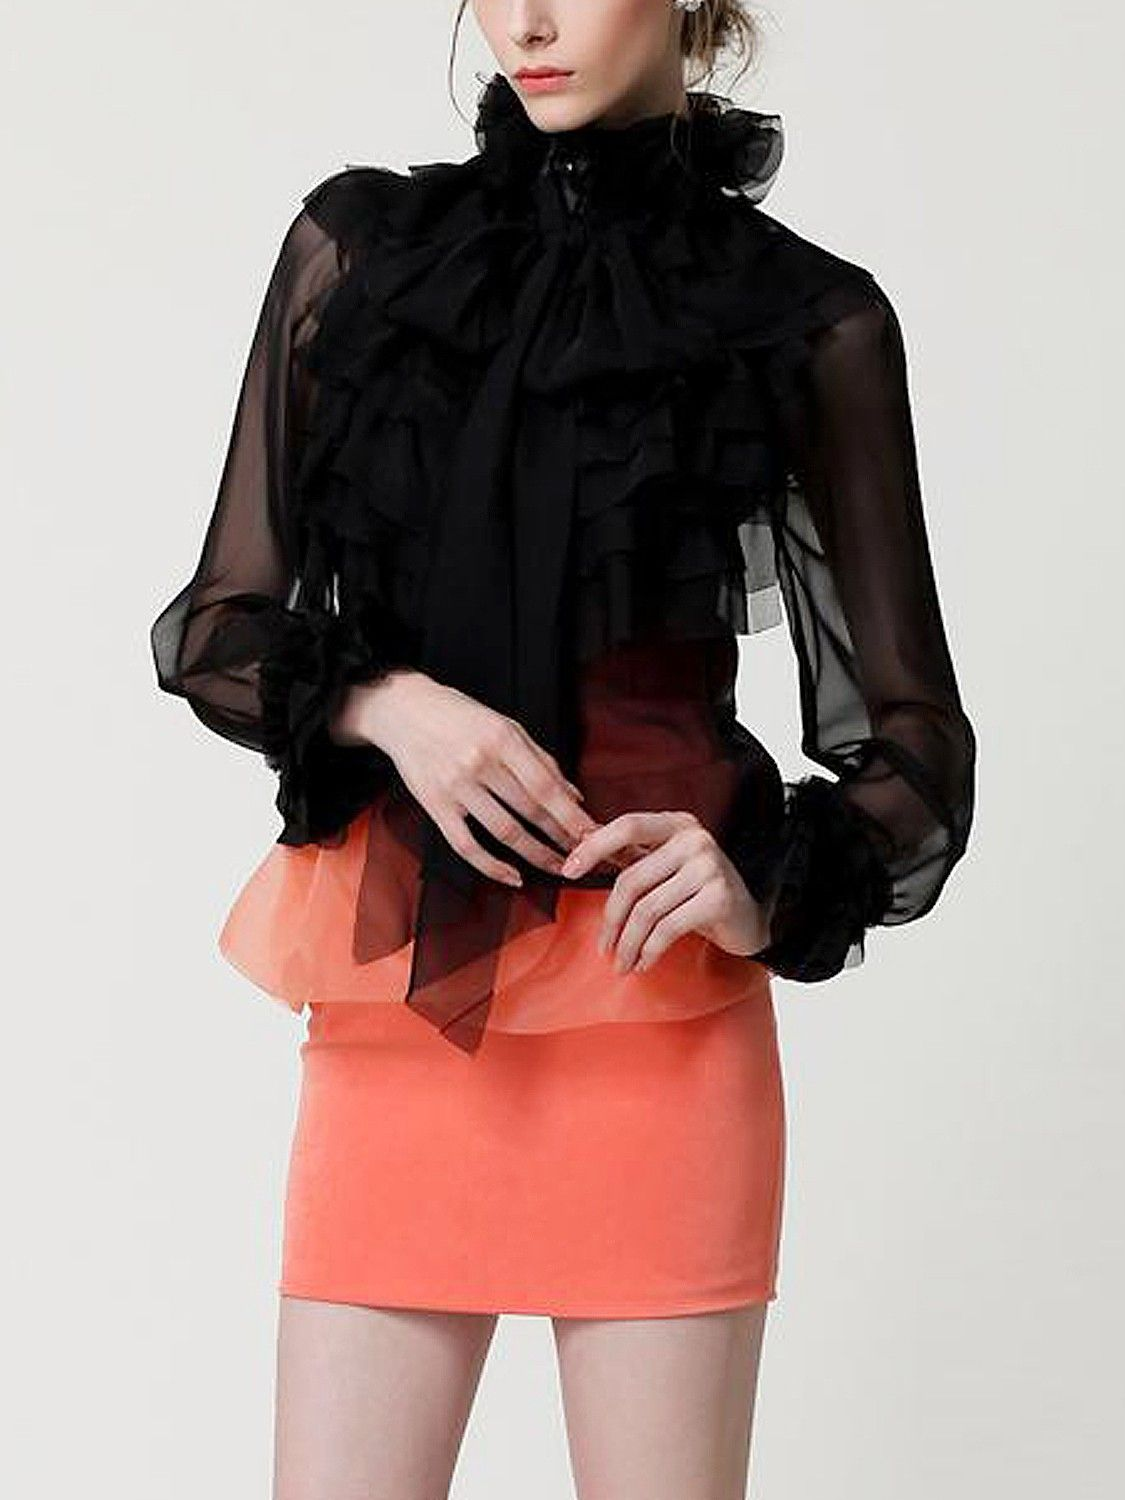 b1dd09f18033c Black Women Tops High Neck Bow Tie Front Layered Ruffle Sheer Clear ...